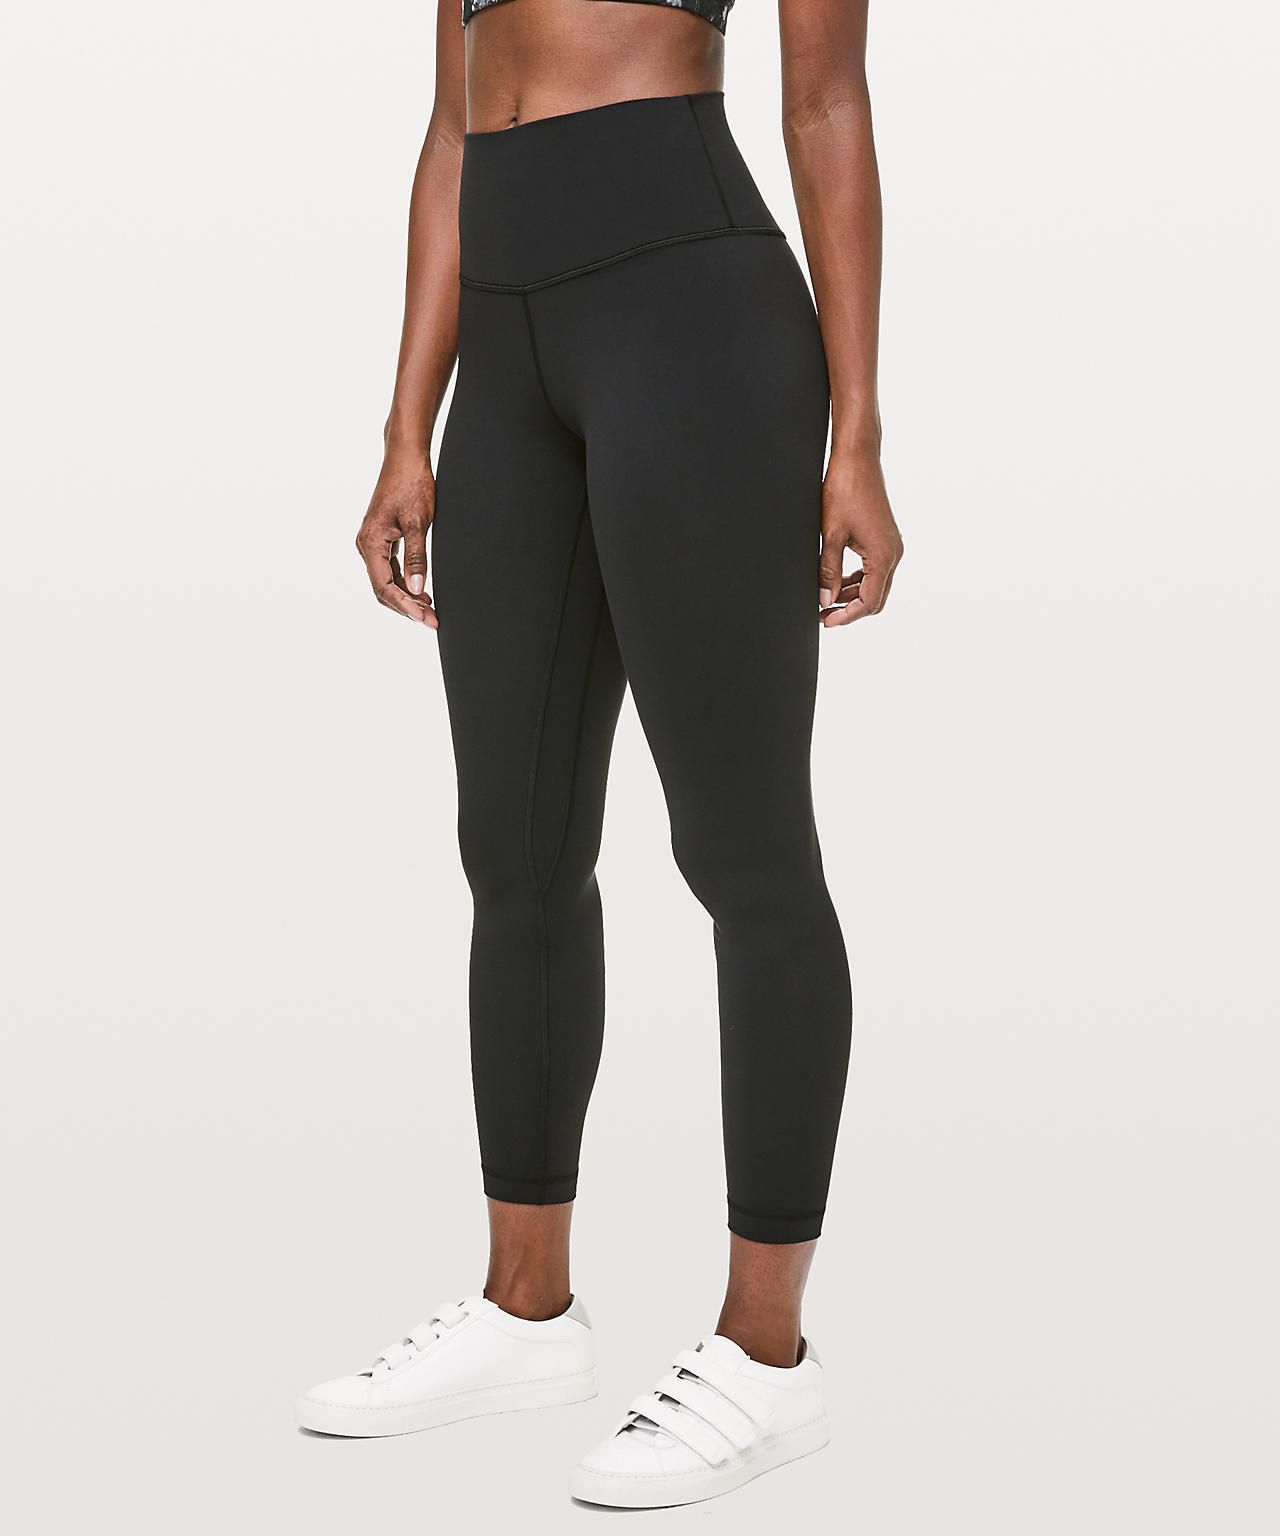 ad94a0d3f37944 Align pant 2, 28inch or longer in a size 4.... I like them in black or the  nude/pink color!